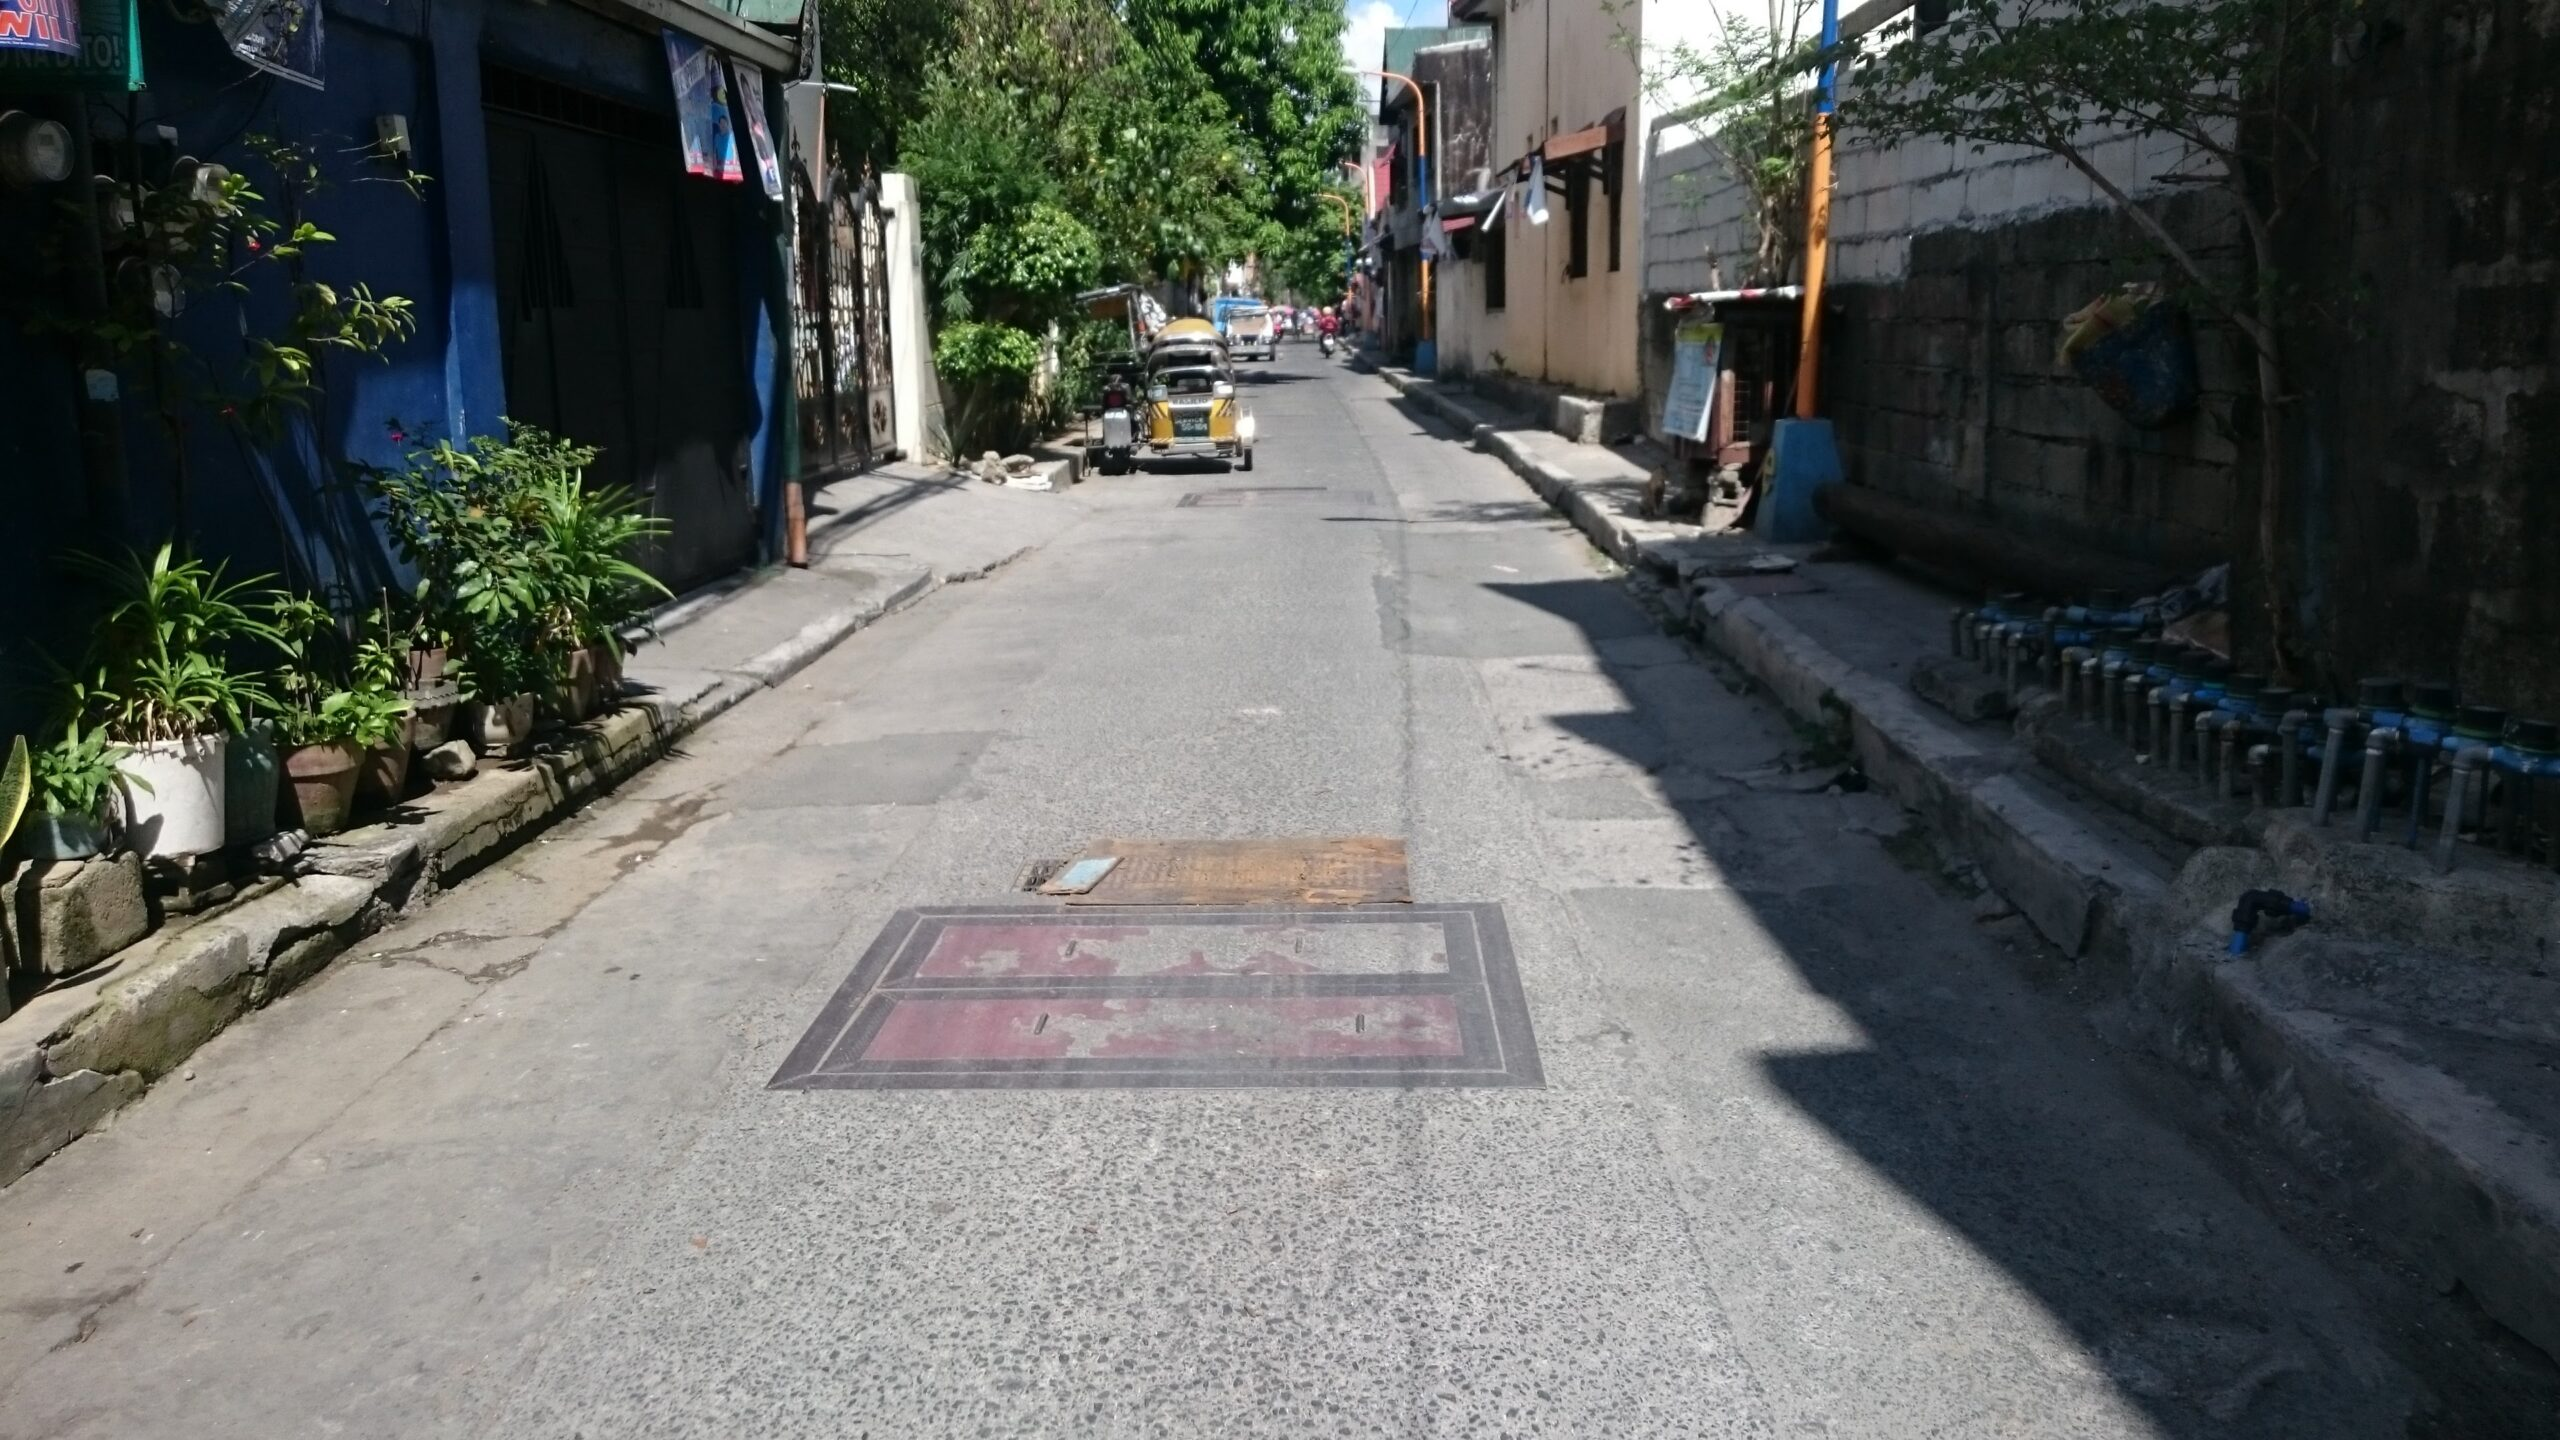 narrow road with parked tricycle and rectangular manhole covers